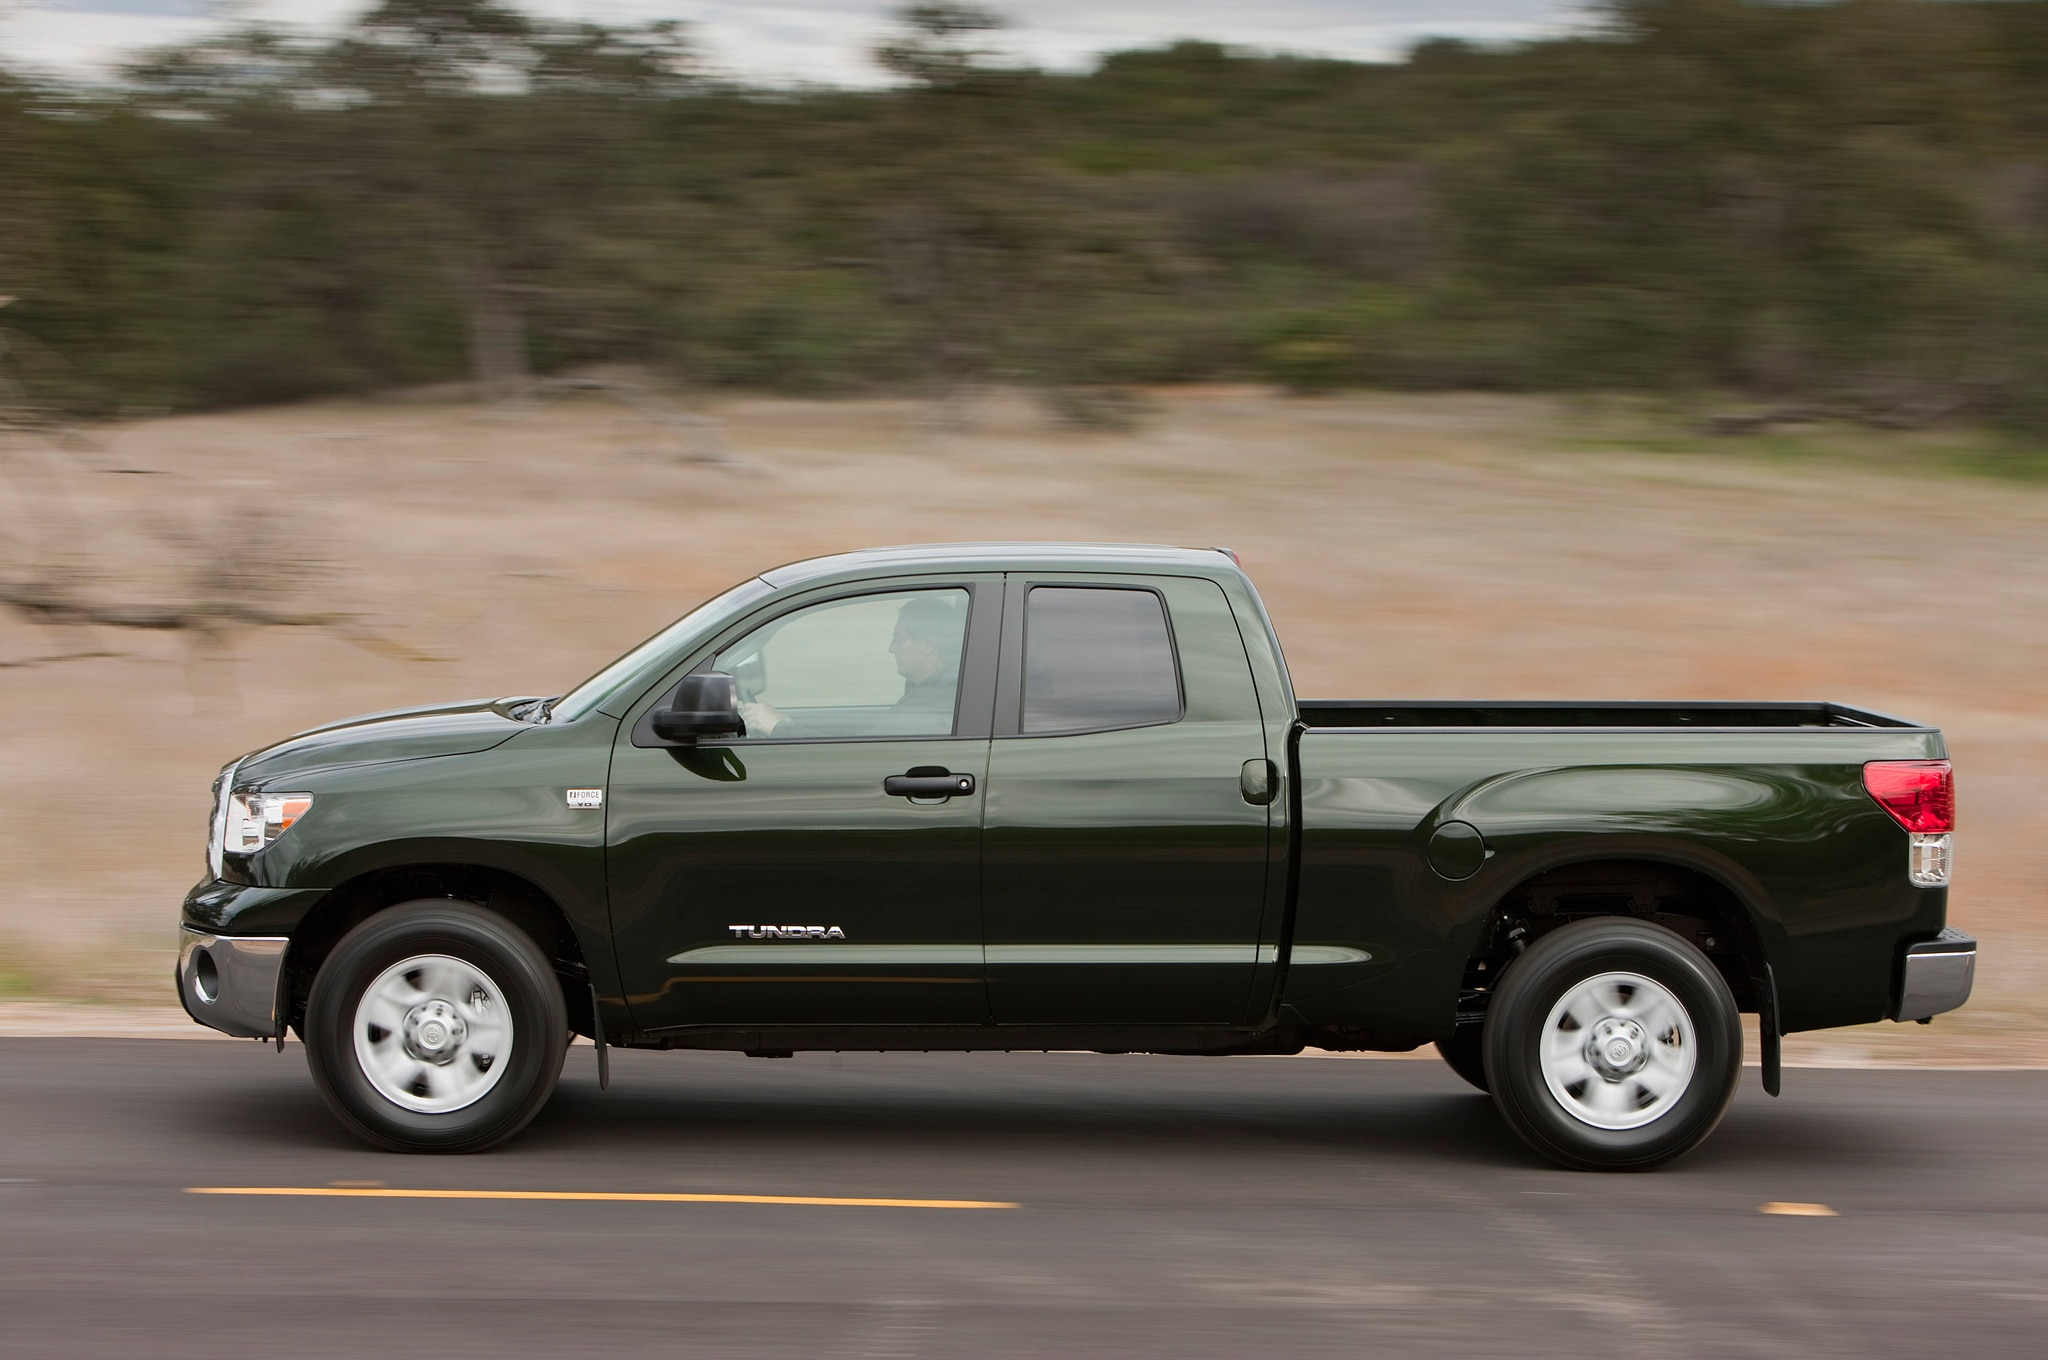 2013 Toyota Tundra Double Cab Side View In Motion